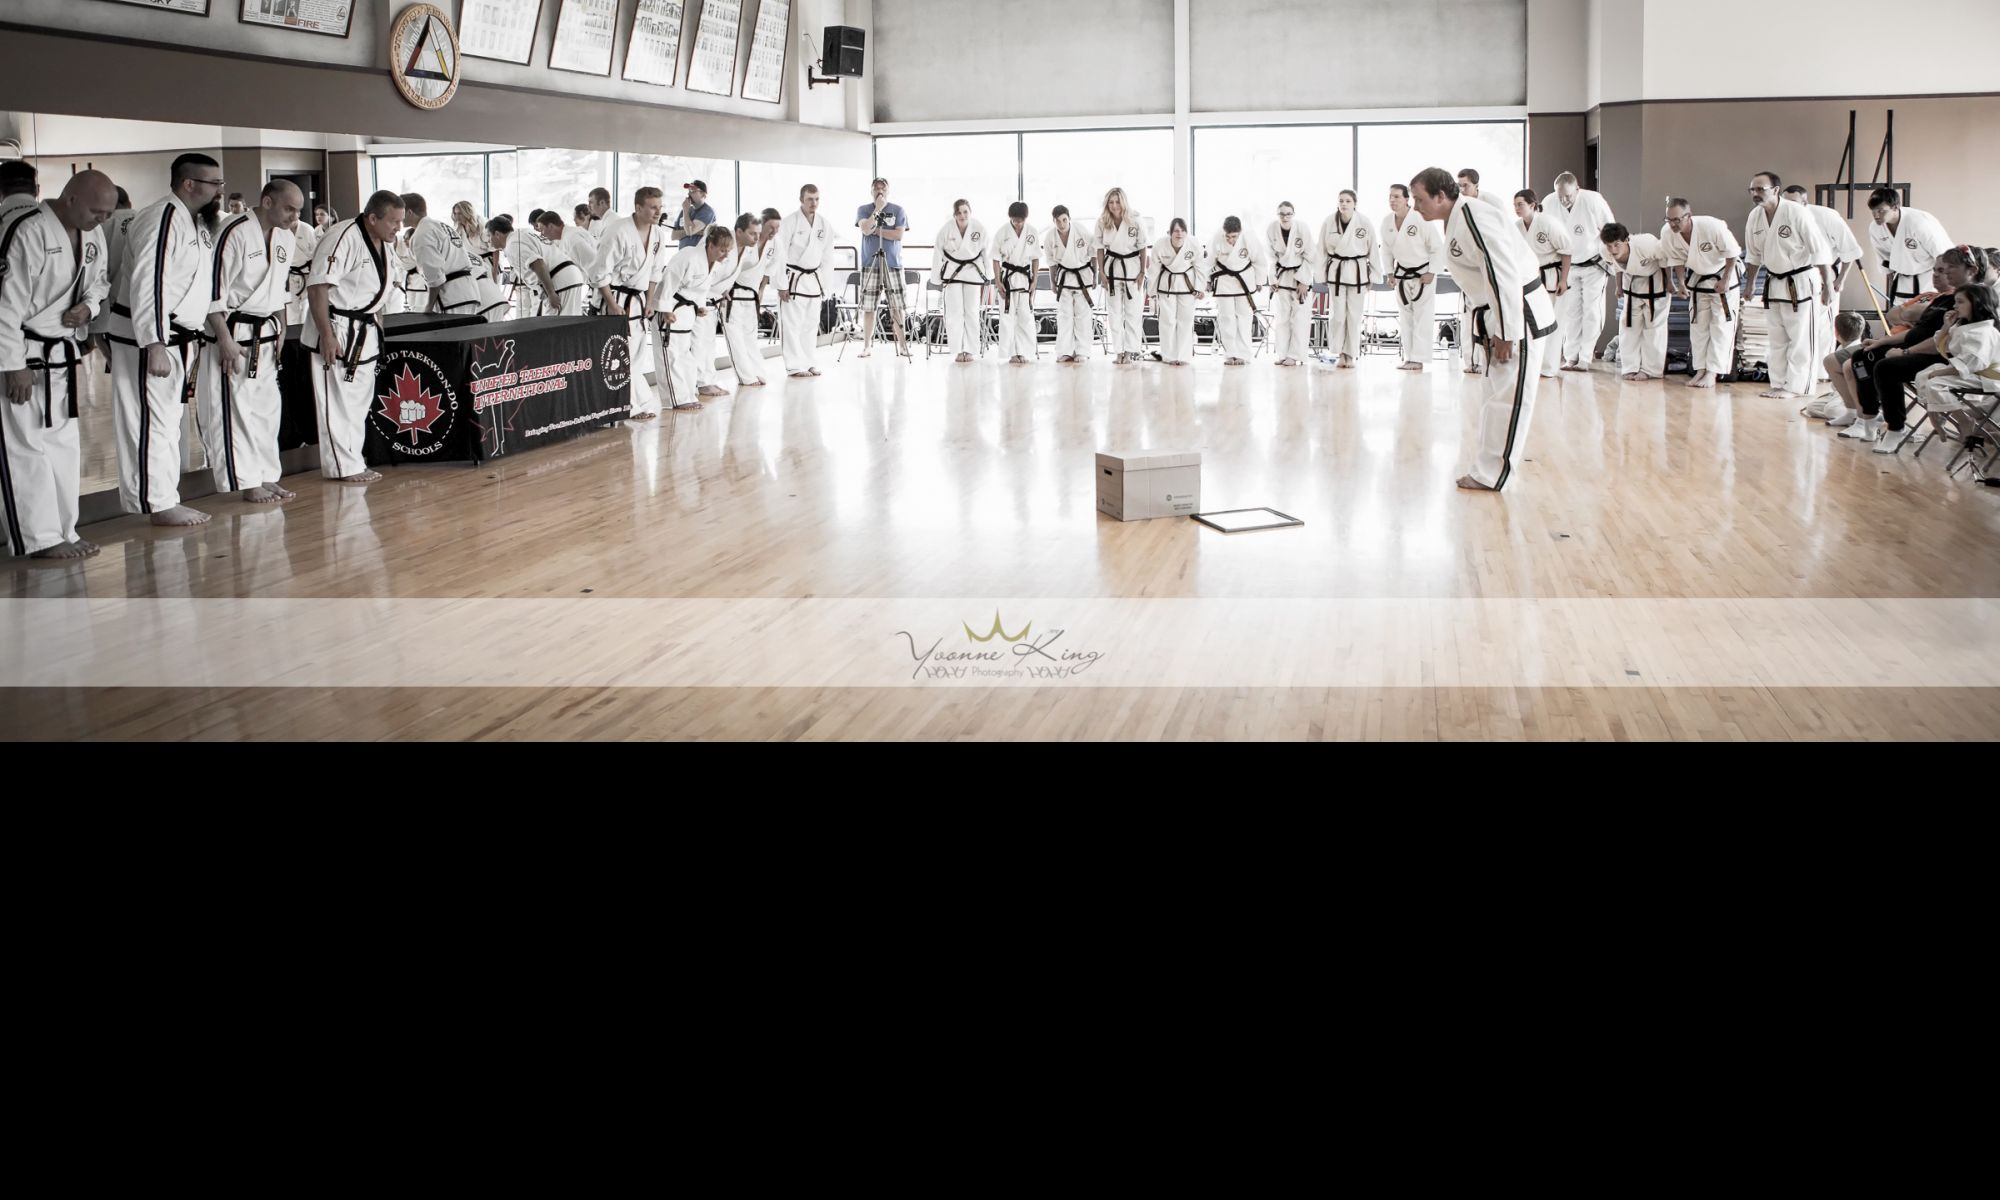 Unified TaeKwon-Do International